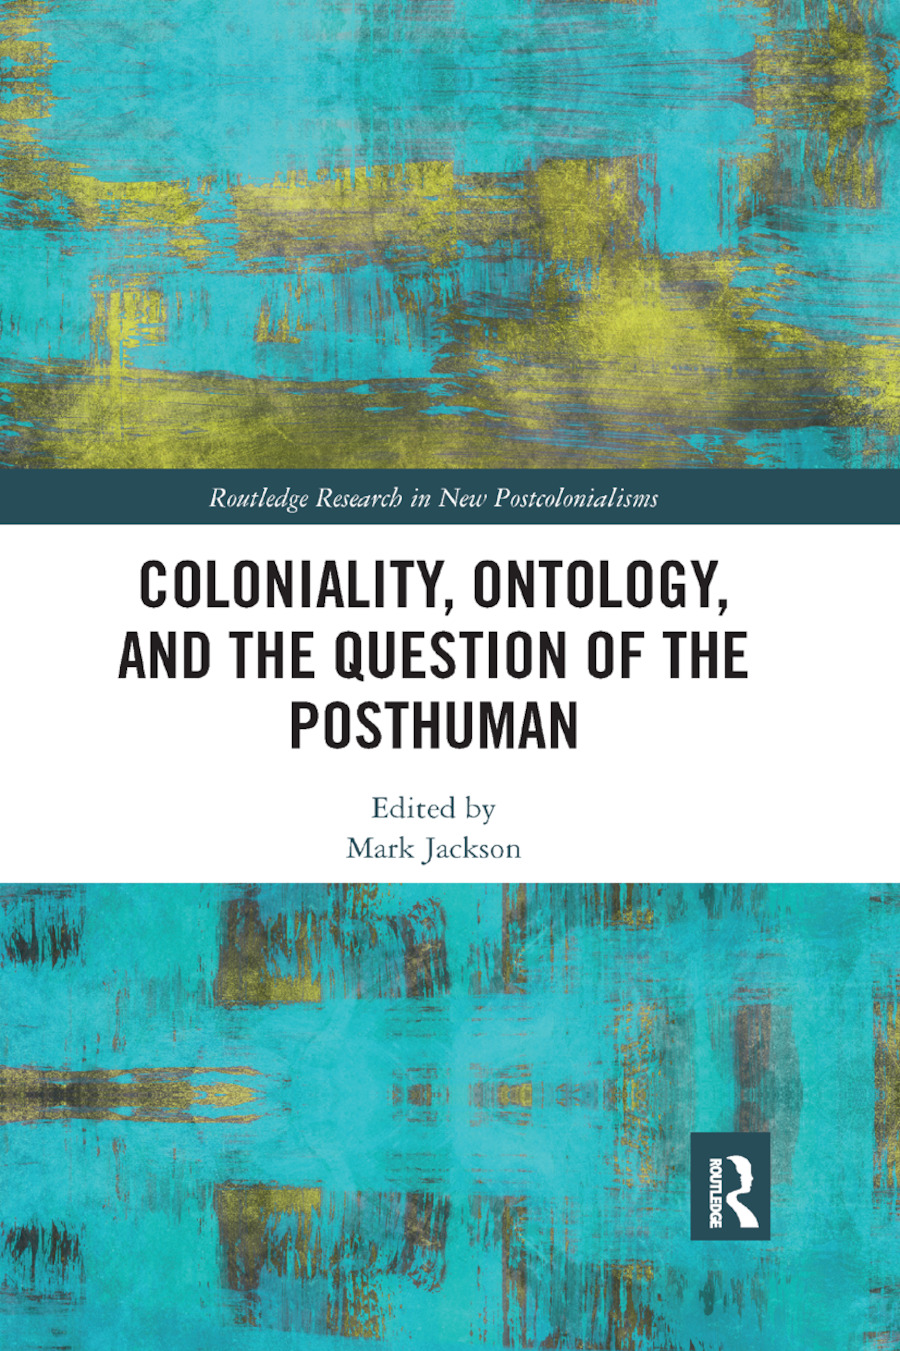 Coloniality, Ontology, and the Question of the Posthuman book cover